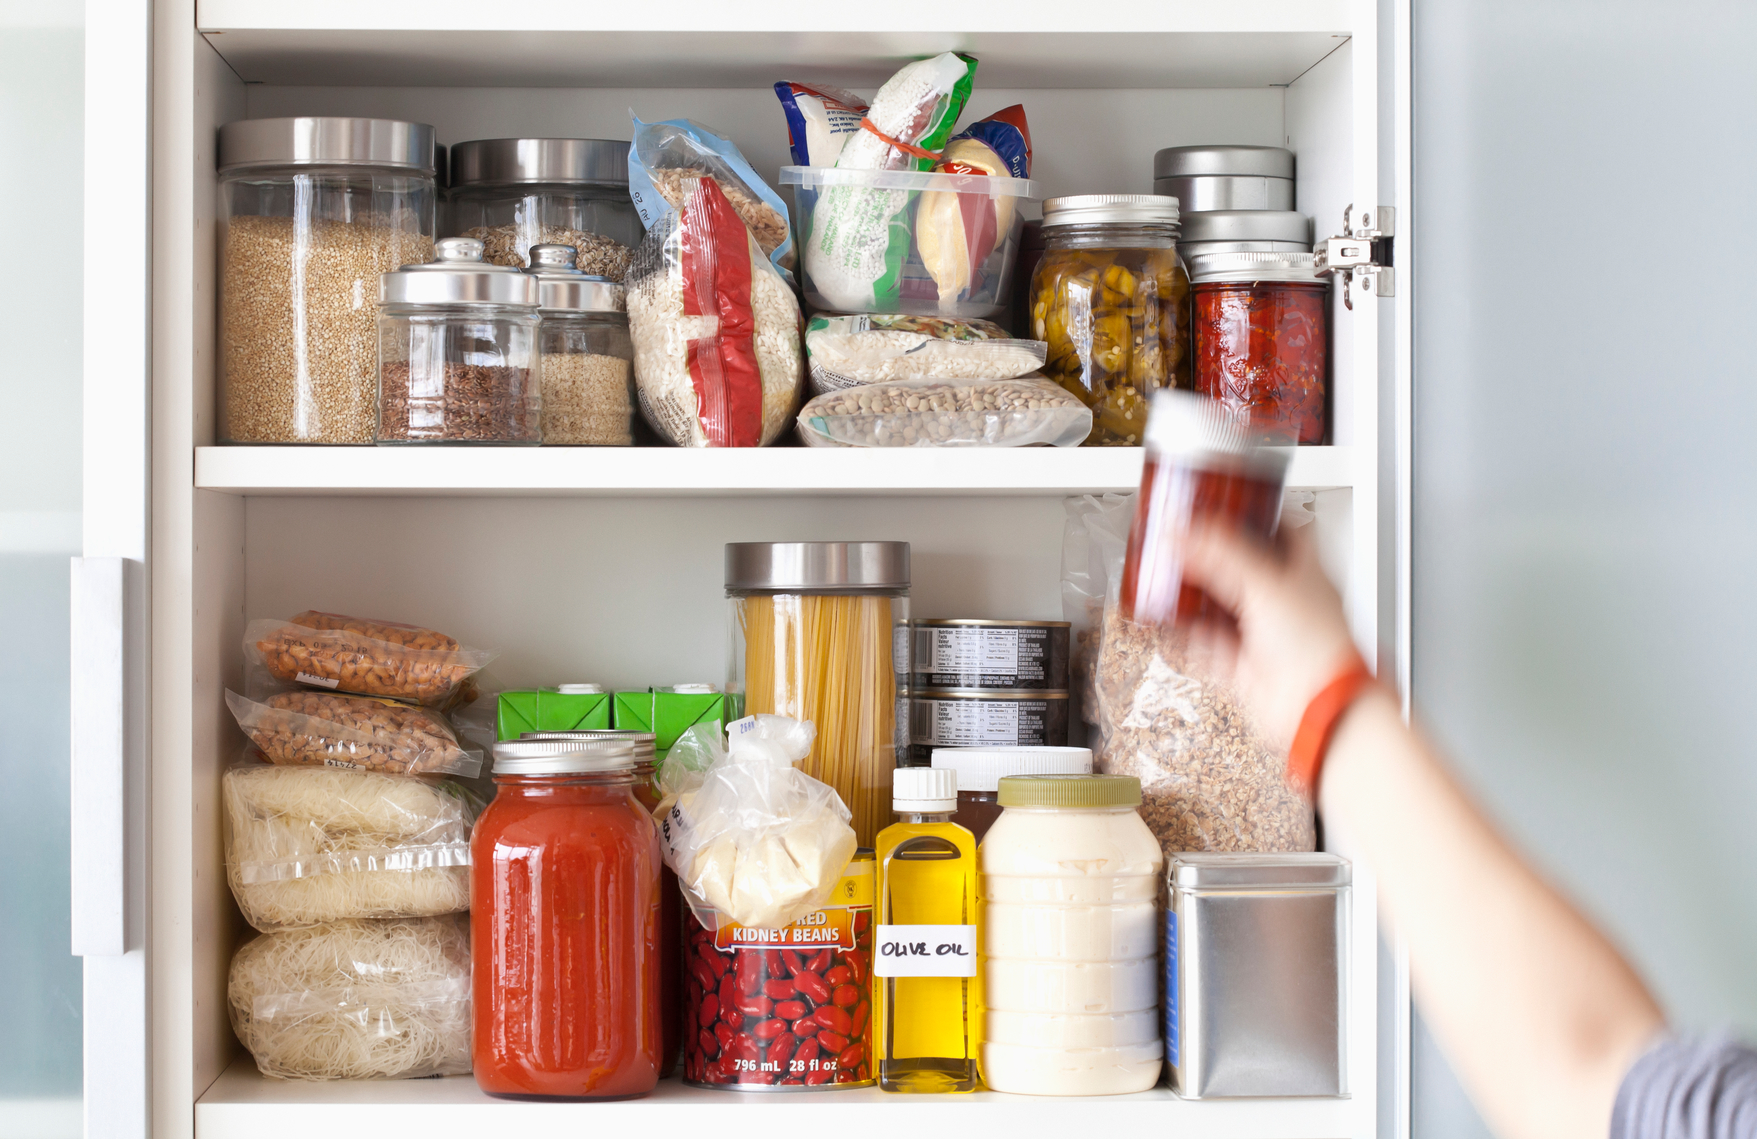 8 Inexpensive Ways to Double Your Kitchen's Shelf Space